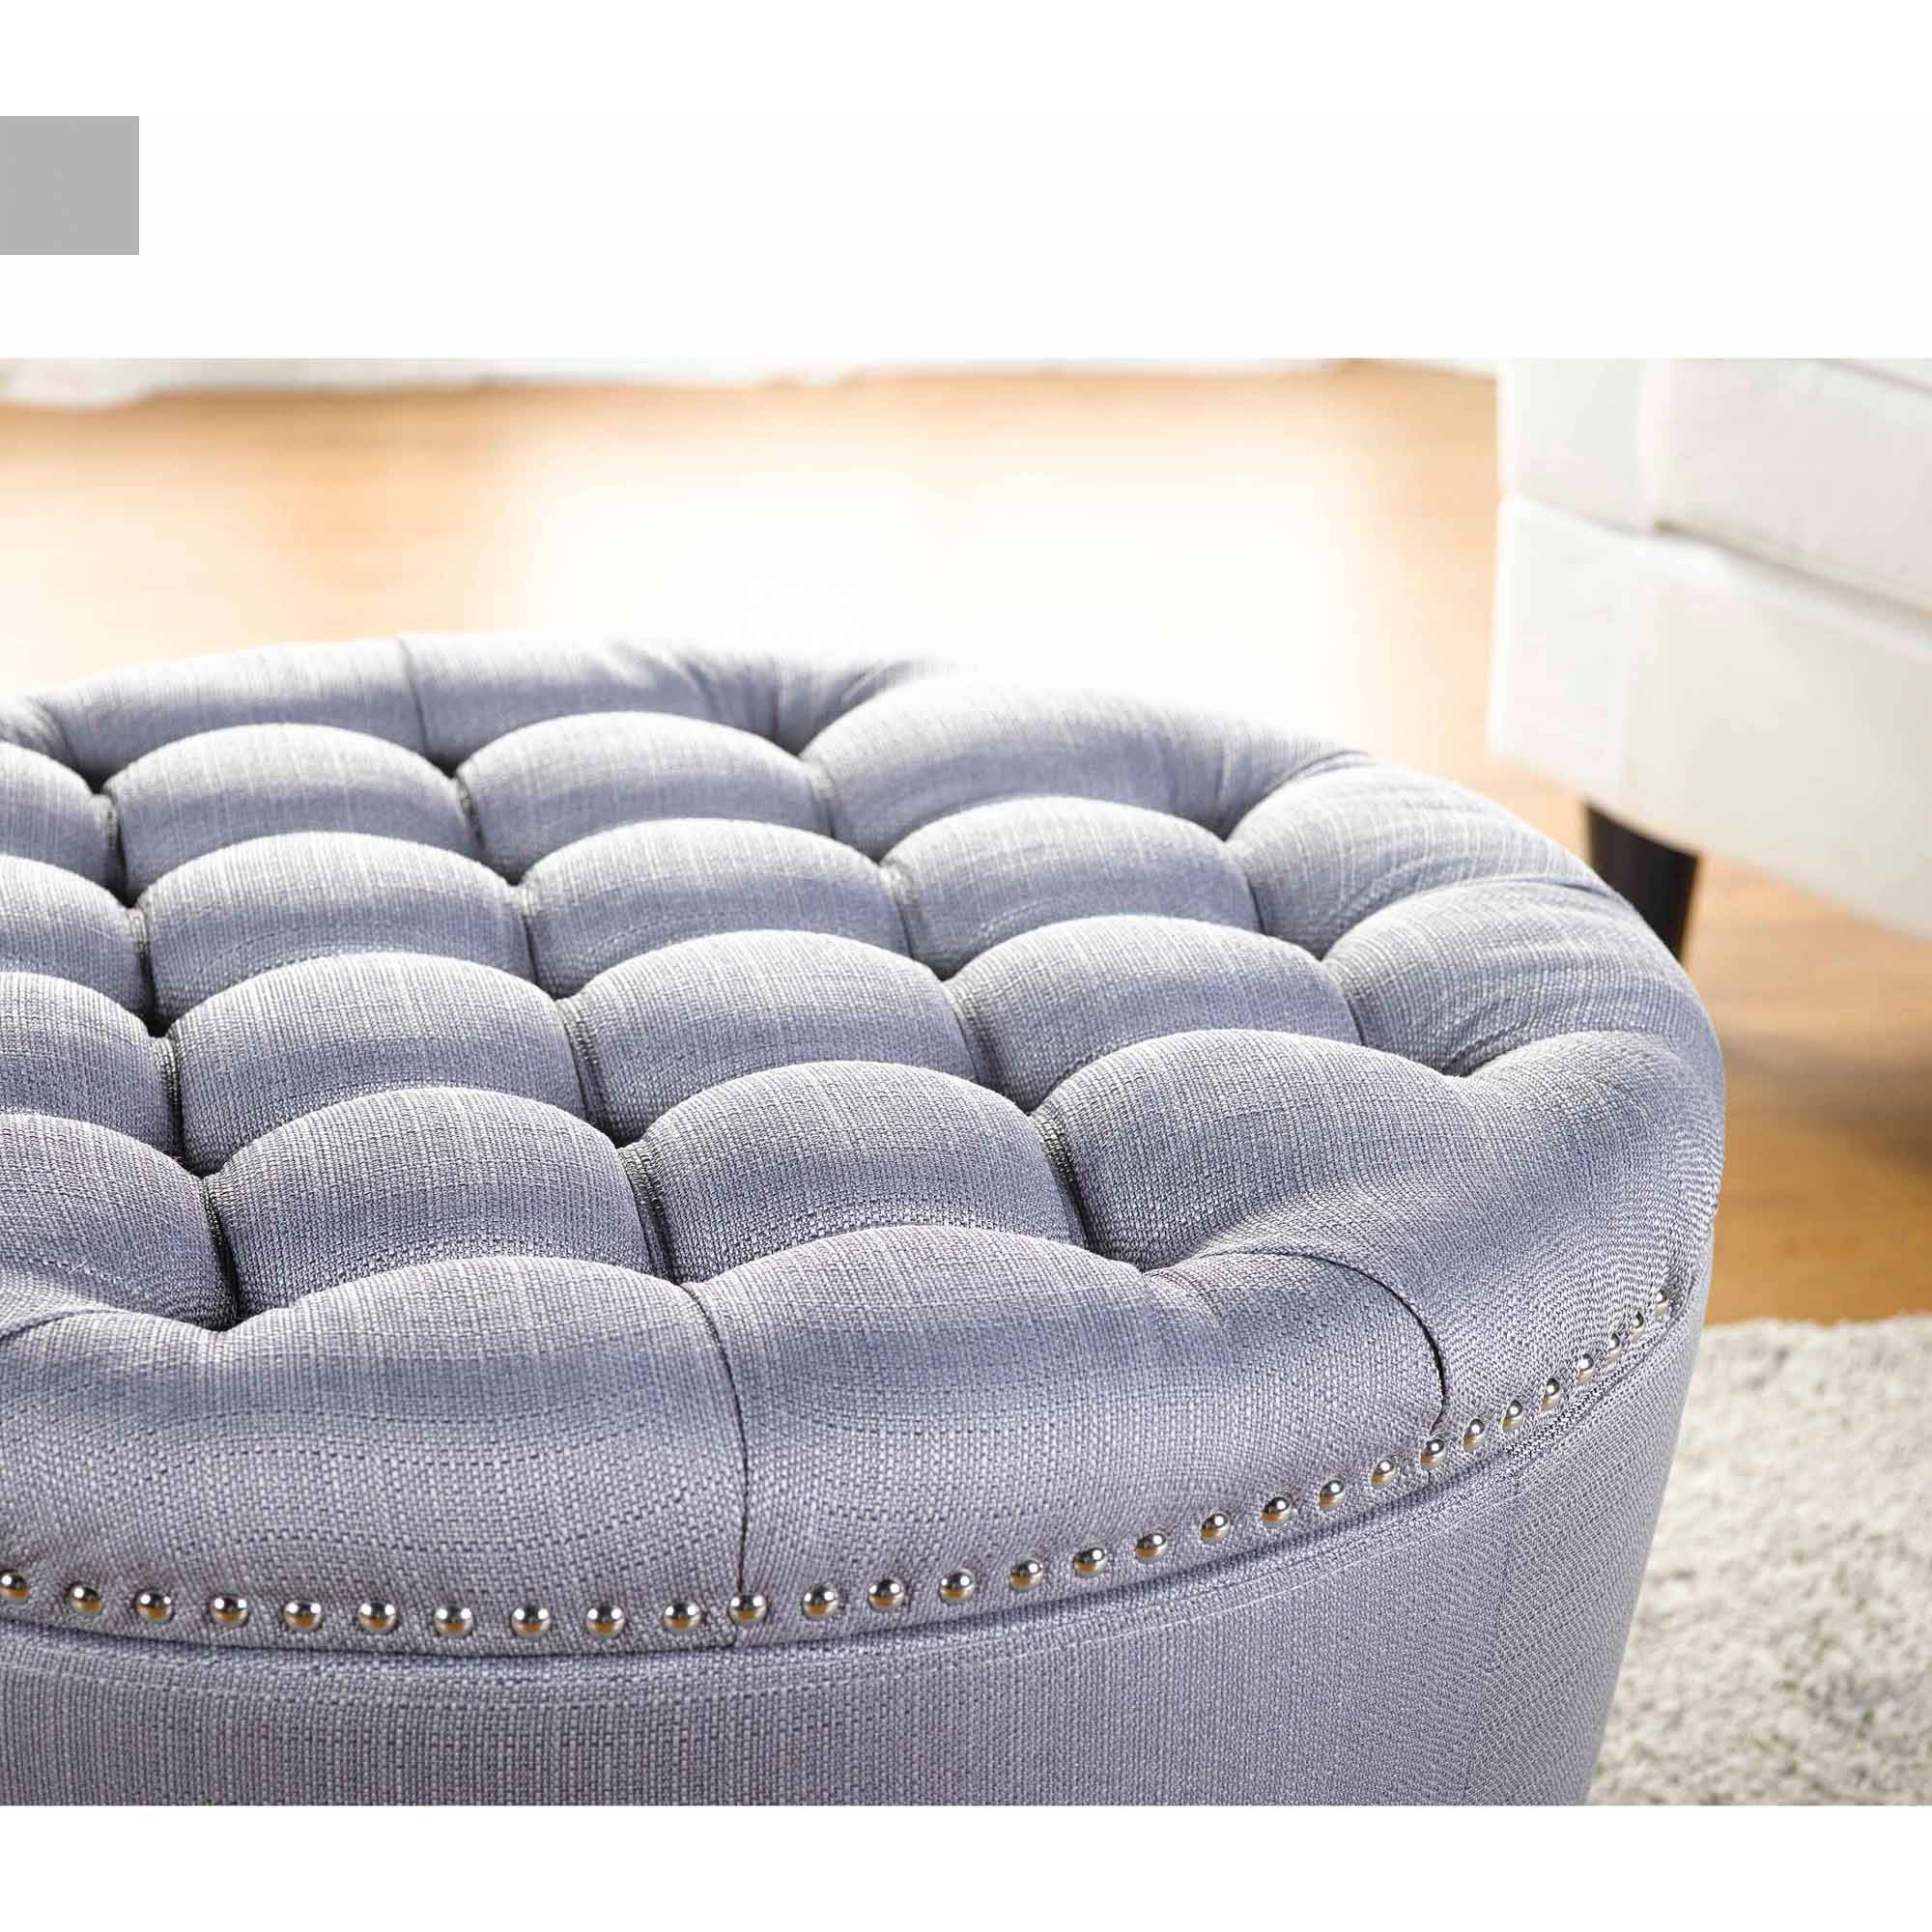 Round Tufted Ottoman Large Upholstered Fabric Gray Storage